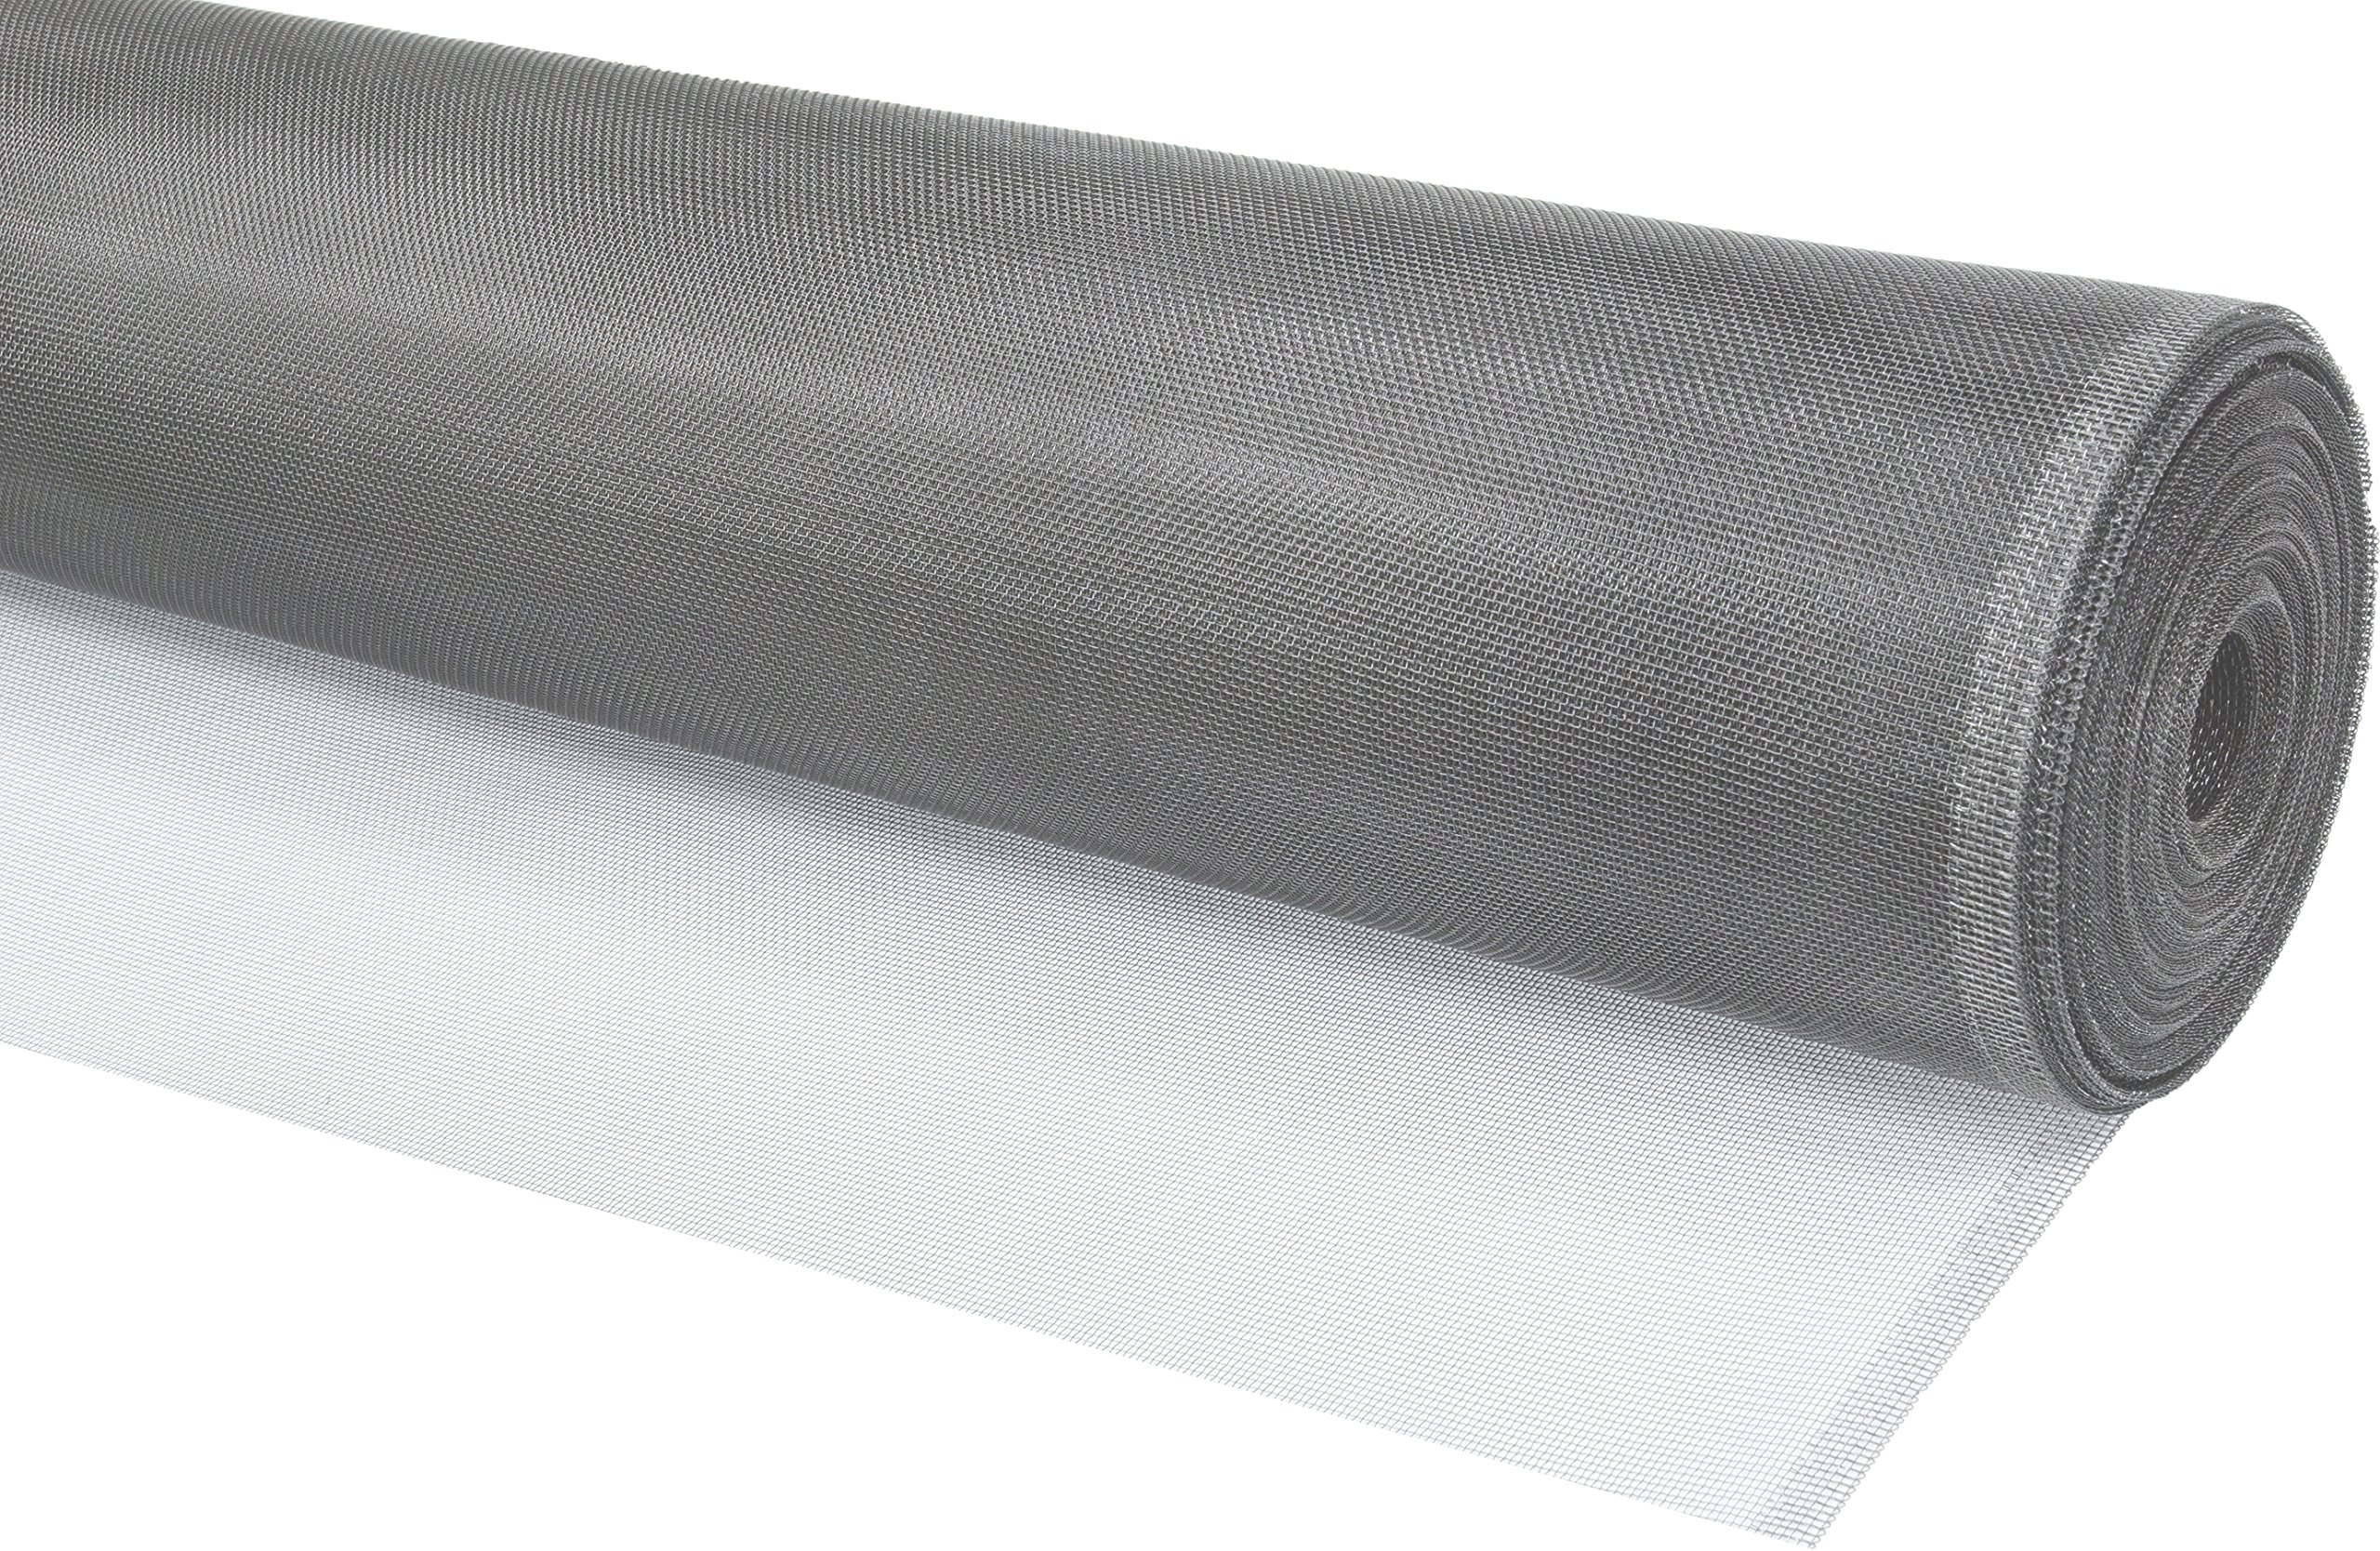 WJ Dennis & Company Climaloc SACL36100S Bulk Roll of Strong Durable Aluminum Replacement Screen for Professionals, 36-Inch x 100-Feet, Silver